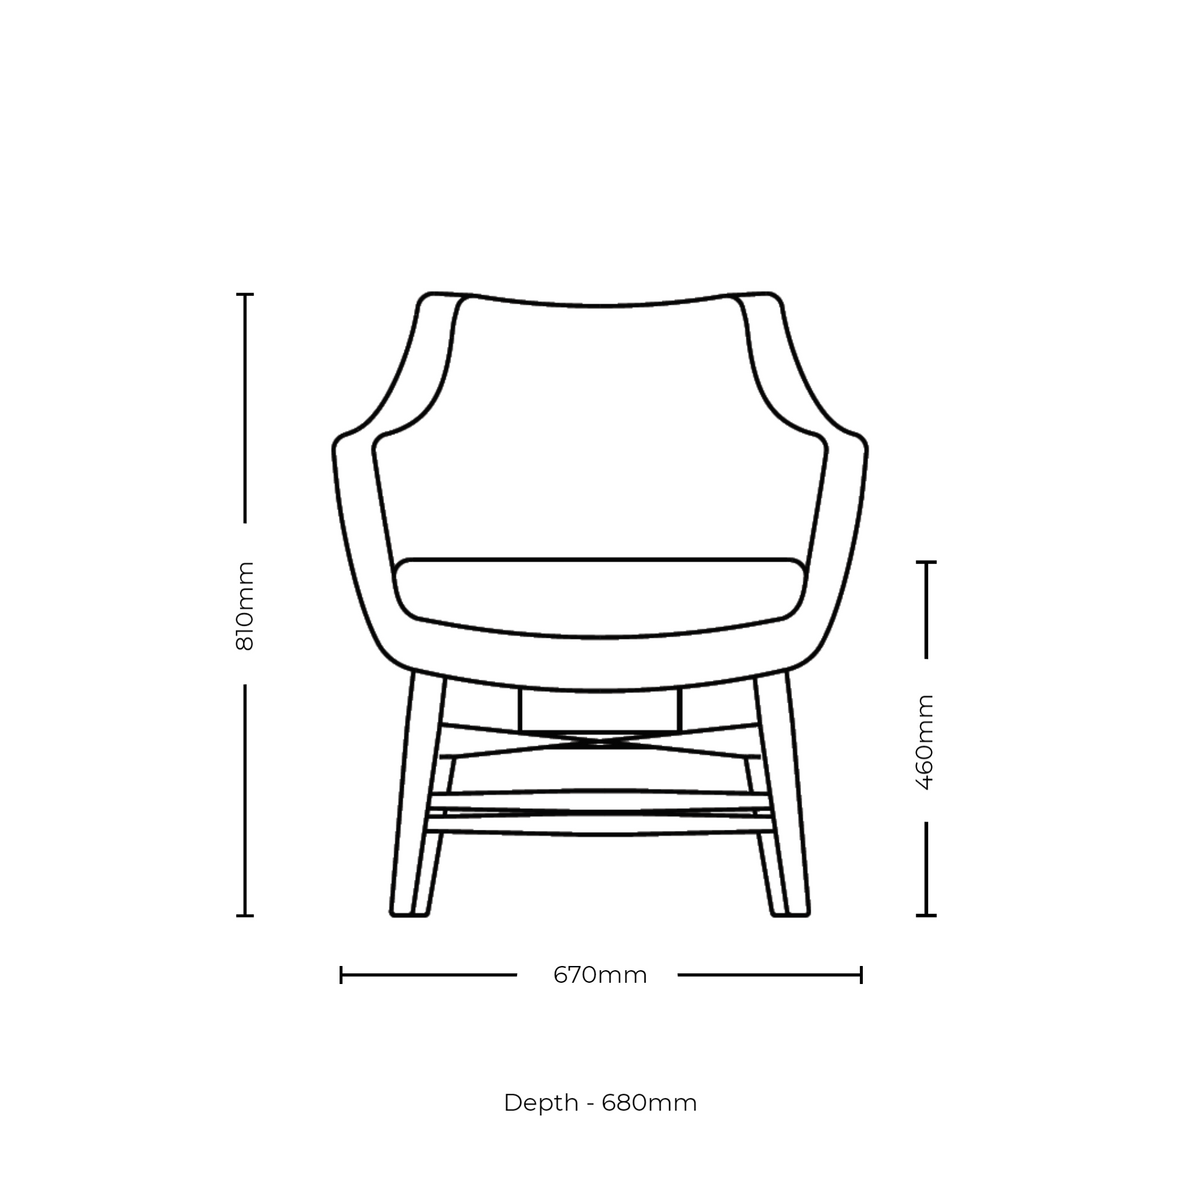 Dimensions for Roger Lewis Office Sintra Compact Chair Timber Base